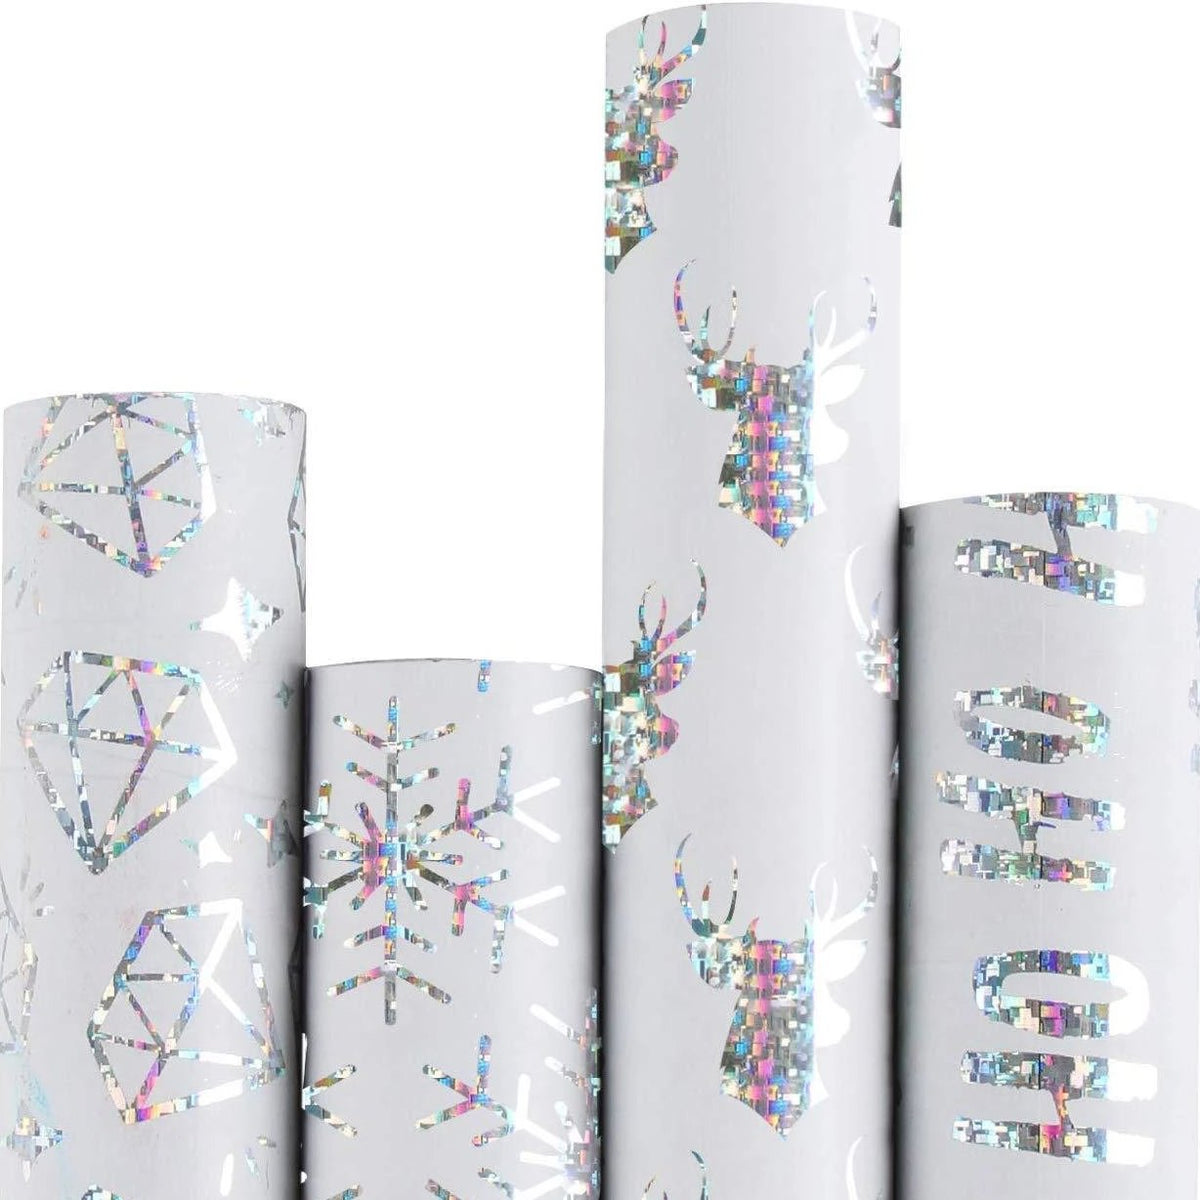 Wrapaholic-Merry-Christmas-Gift-Wrapping-Paper-Roll-Diamond-white-silver